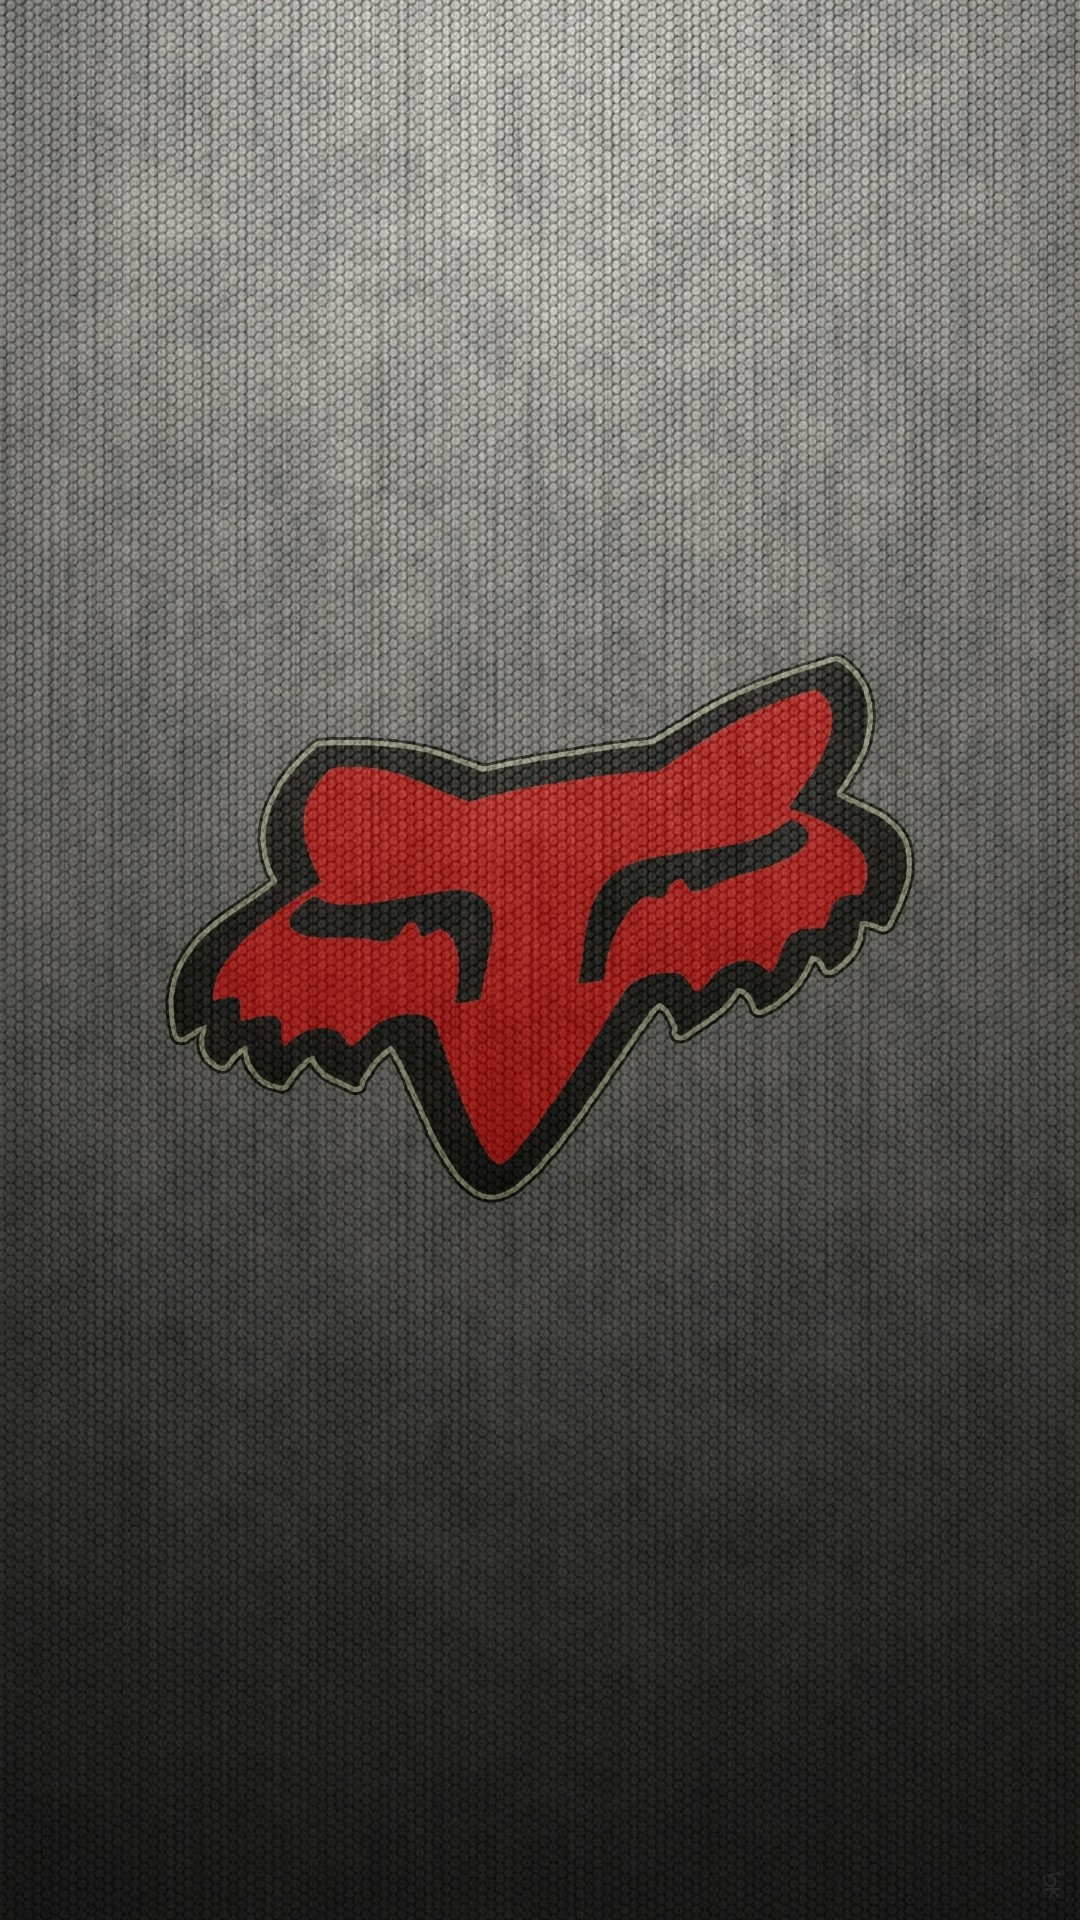 Knicks Iphone Wallpaper Fox Racing Backgrounds 59 Images